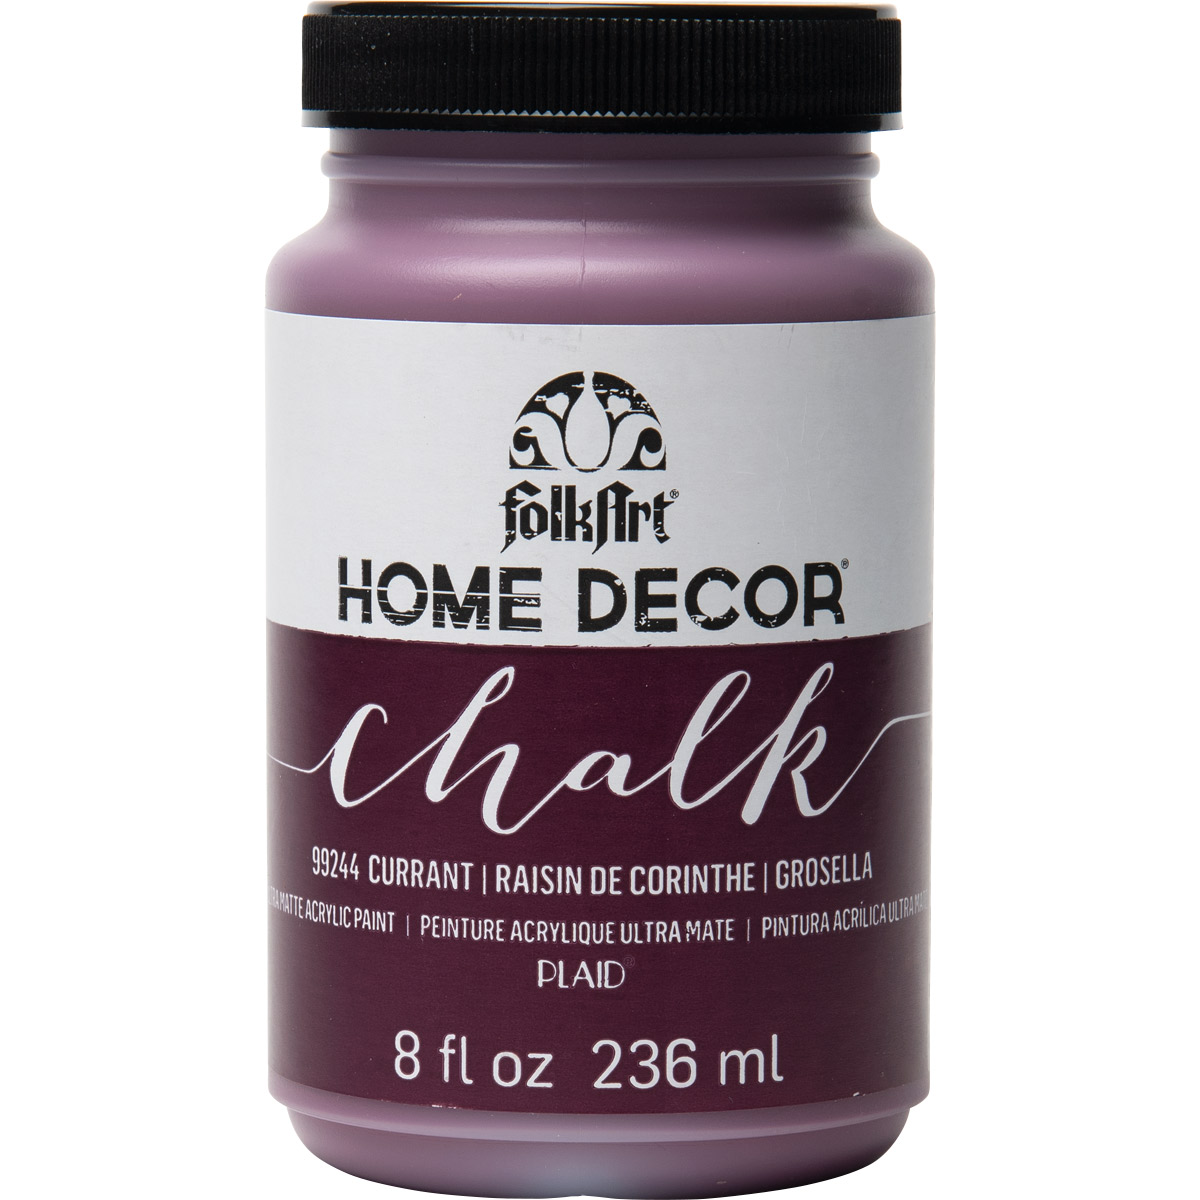 FolkArt ® Home Decor™ Chalk - Currant, 8 oz. - 99244